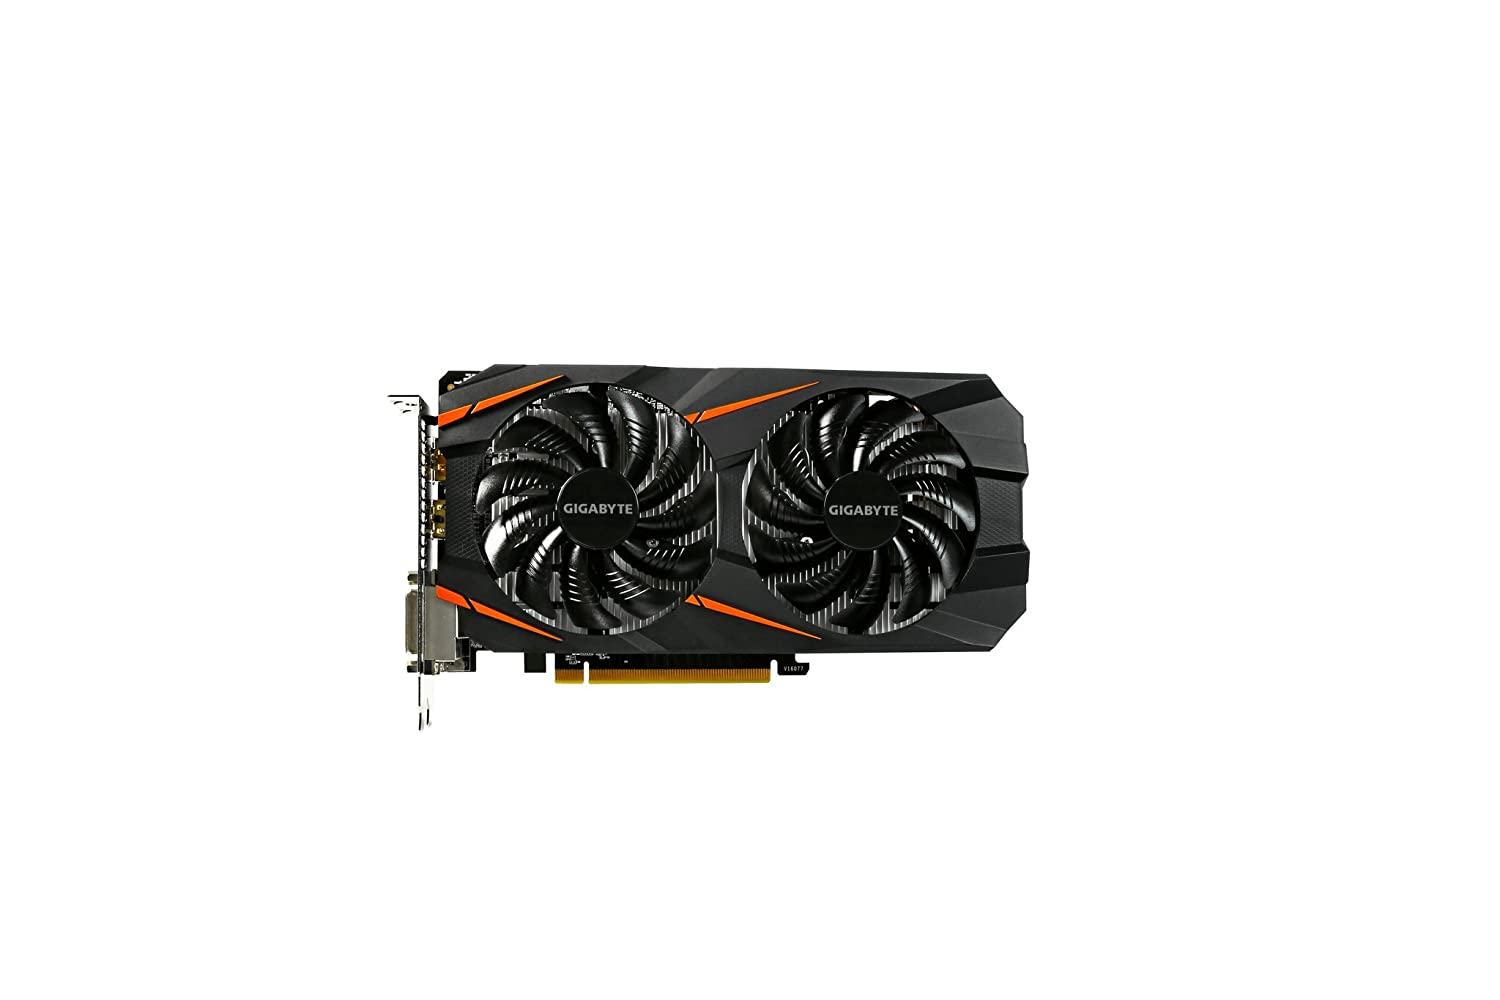 Gigabyte Geforce Gtx 1060 Windforce Oc 3gb Gddr5 Evga Graphics Card For Dell Dimension 5100 Video Desktop Computers Accessories